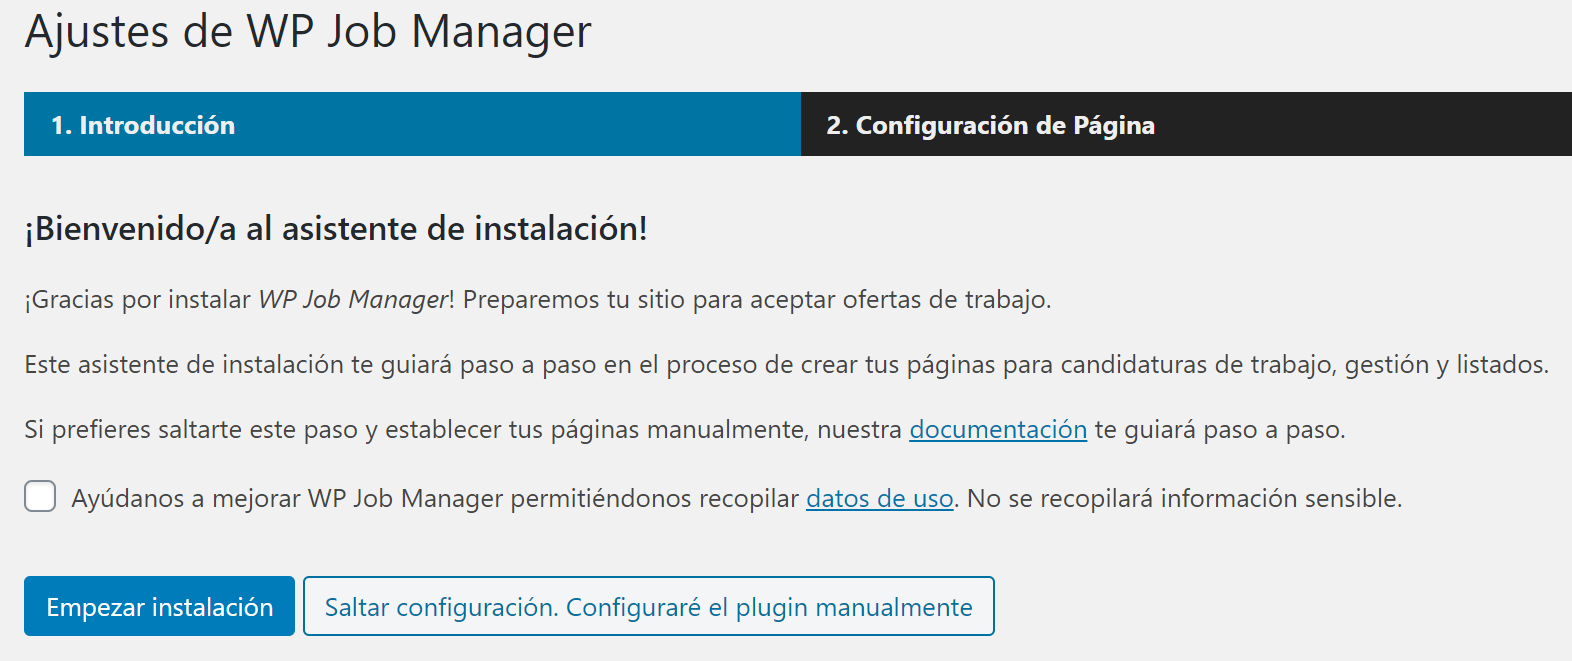 ¿Cómo usar WP JOB Manager? 2